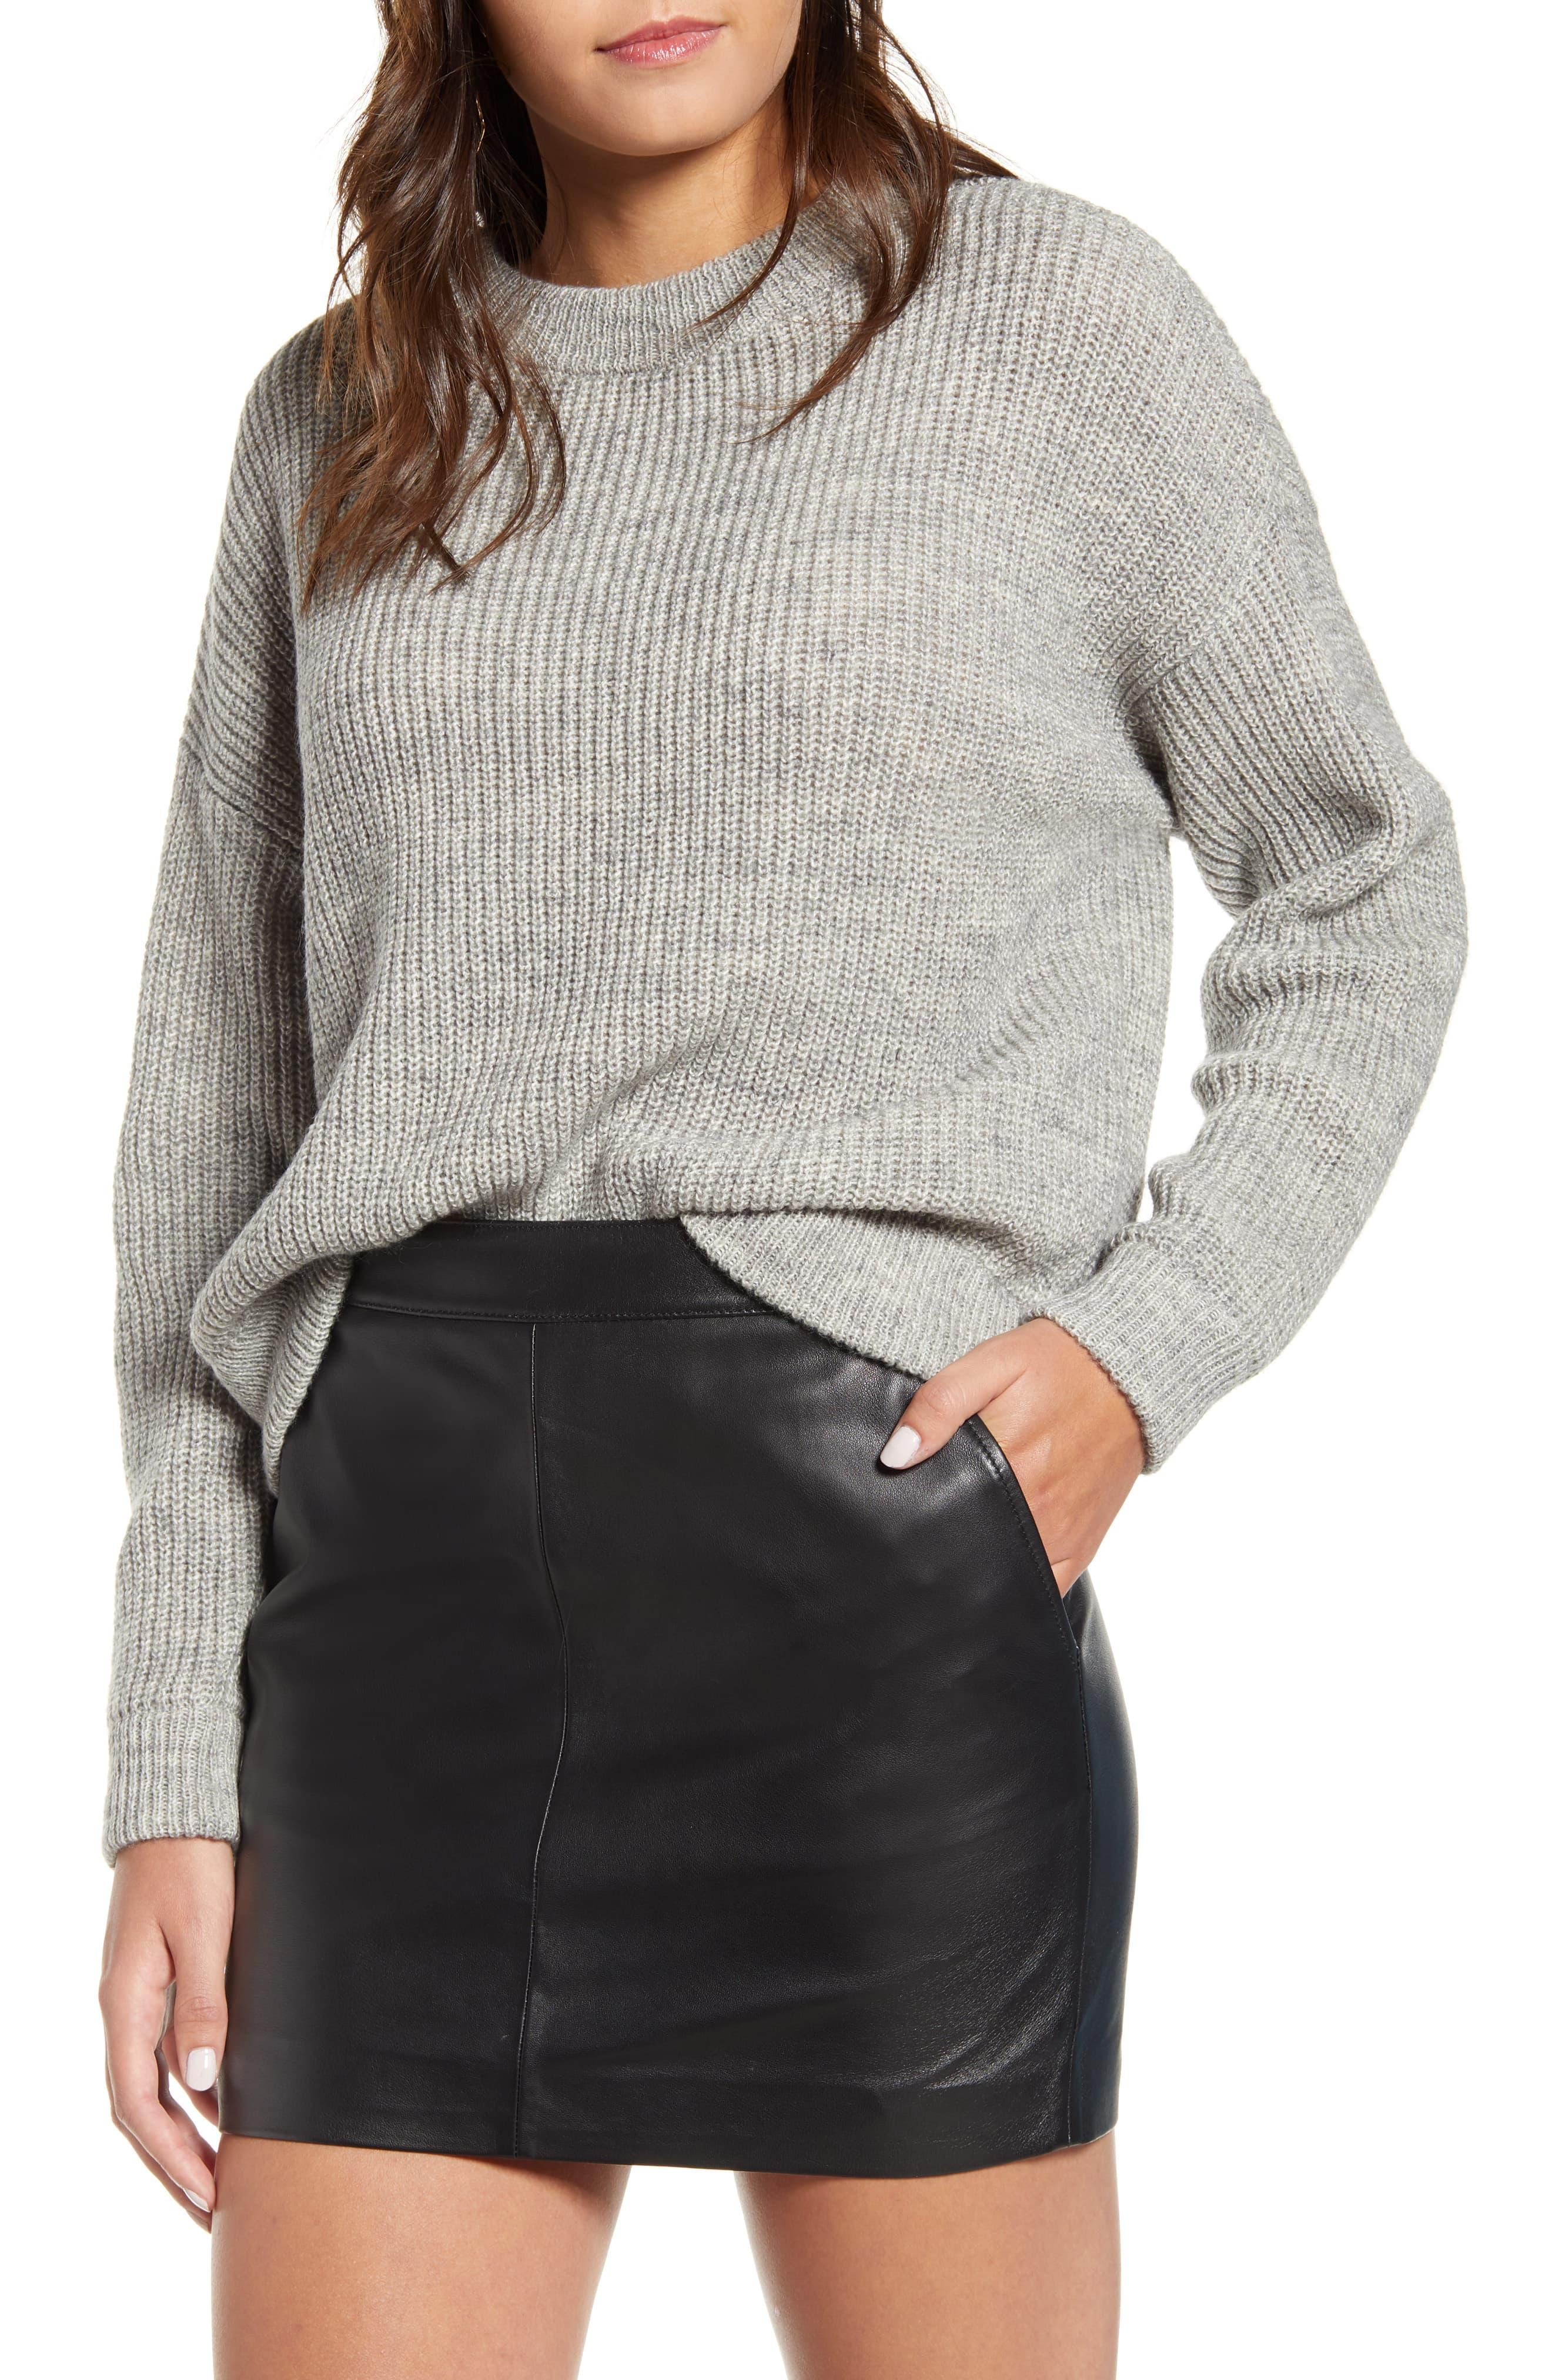 cheap for discount 70b38 ce898 Women's Gray Imagine Knit Pullover